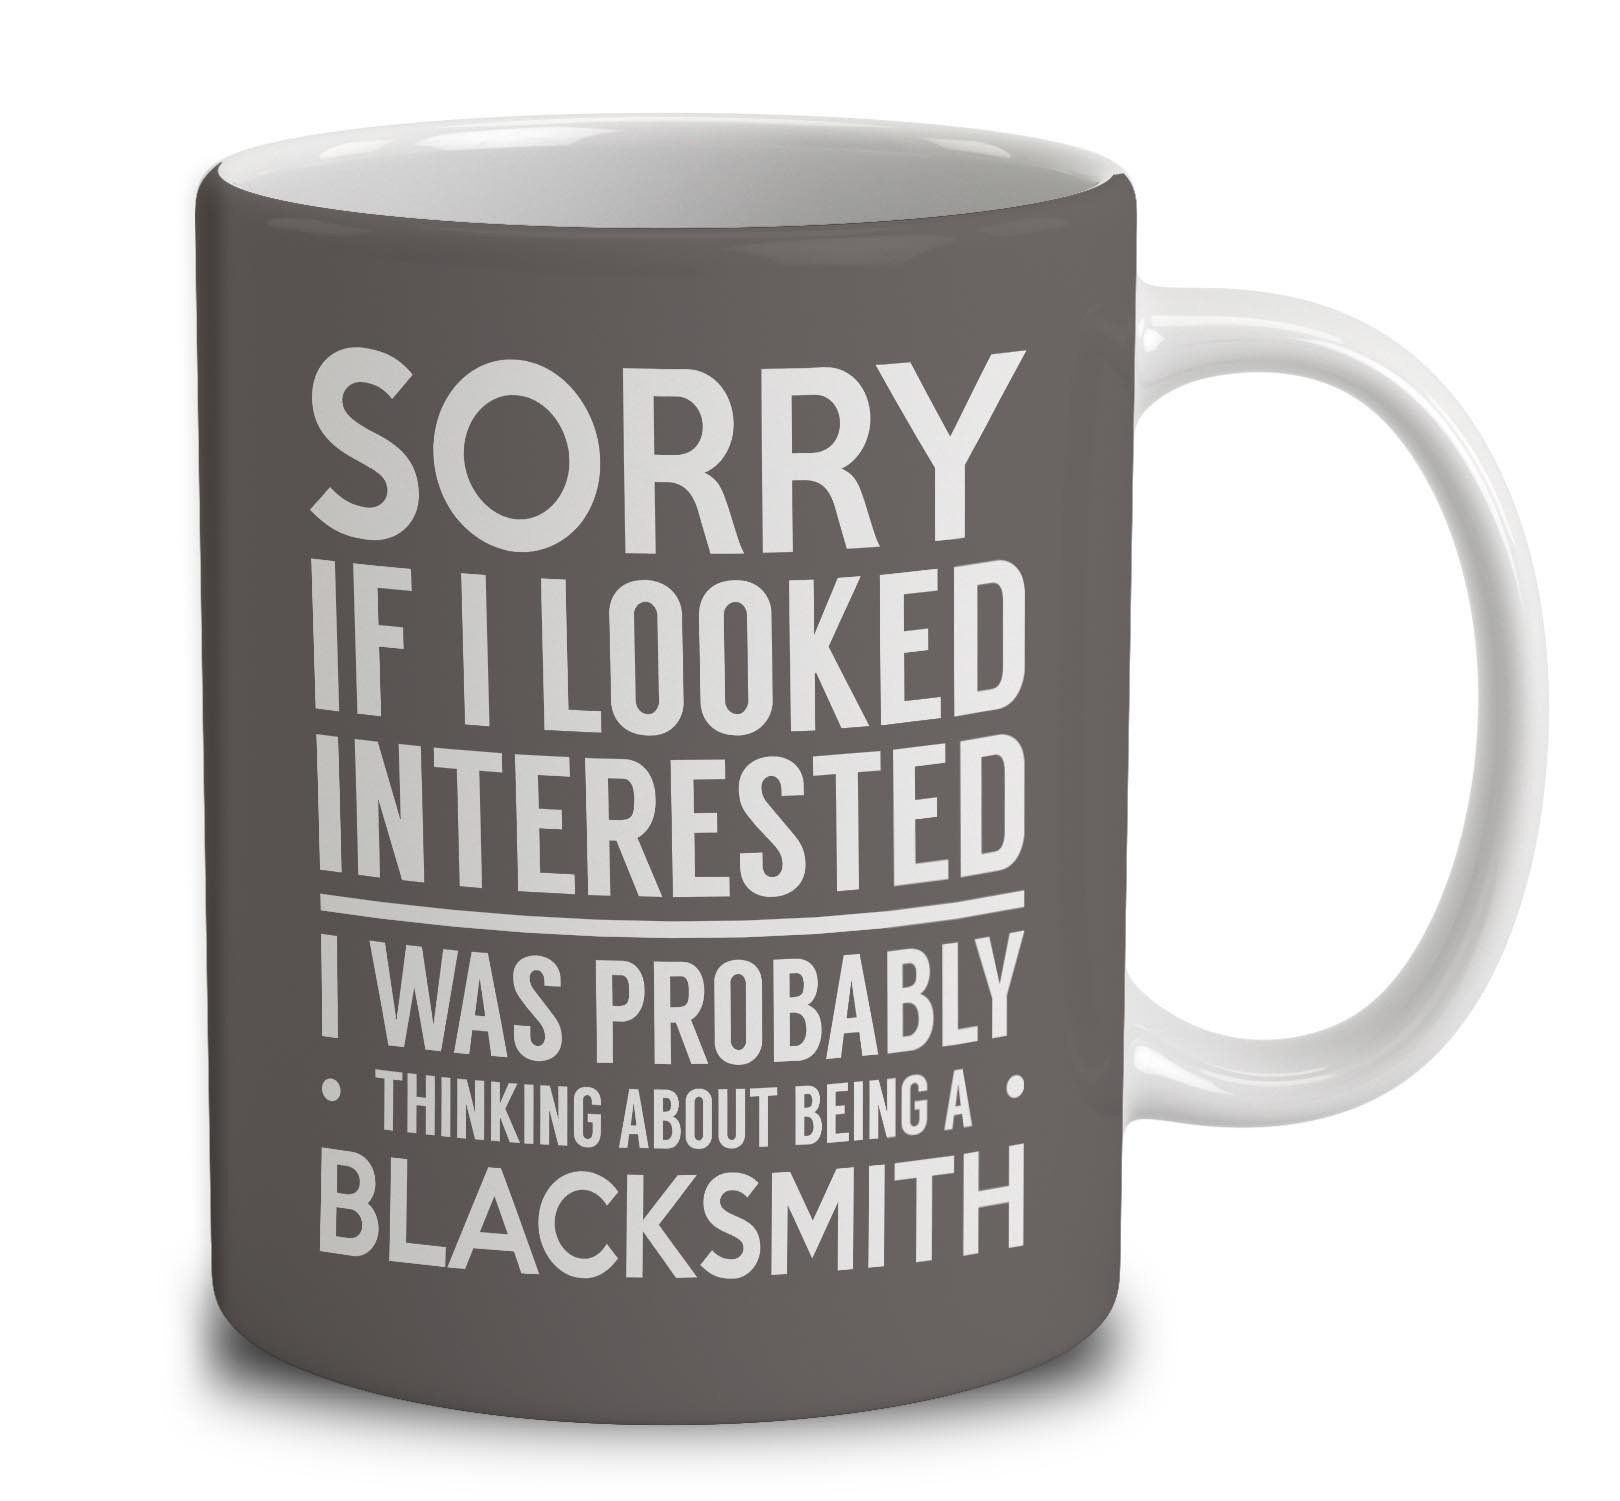 Probably Thinking About Being A Blacksmith Mugs Coffee Mugs